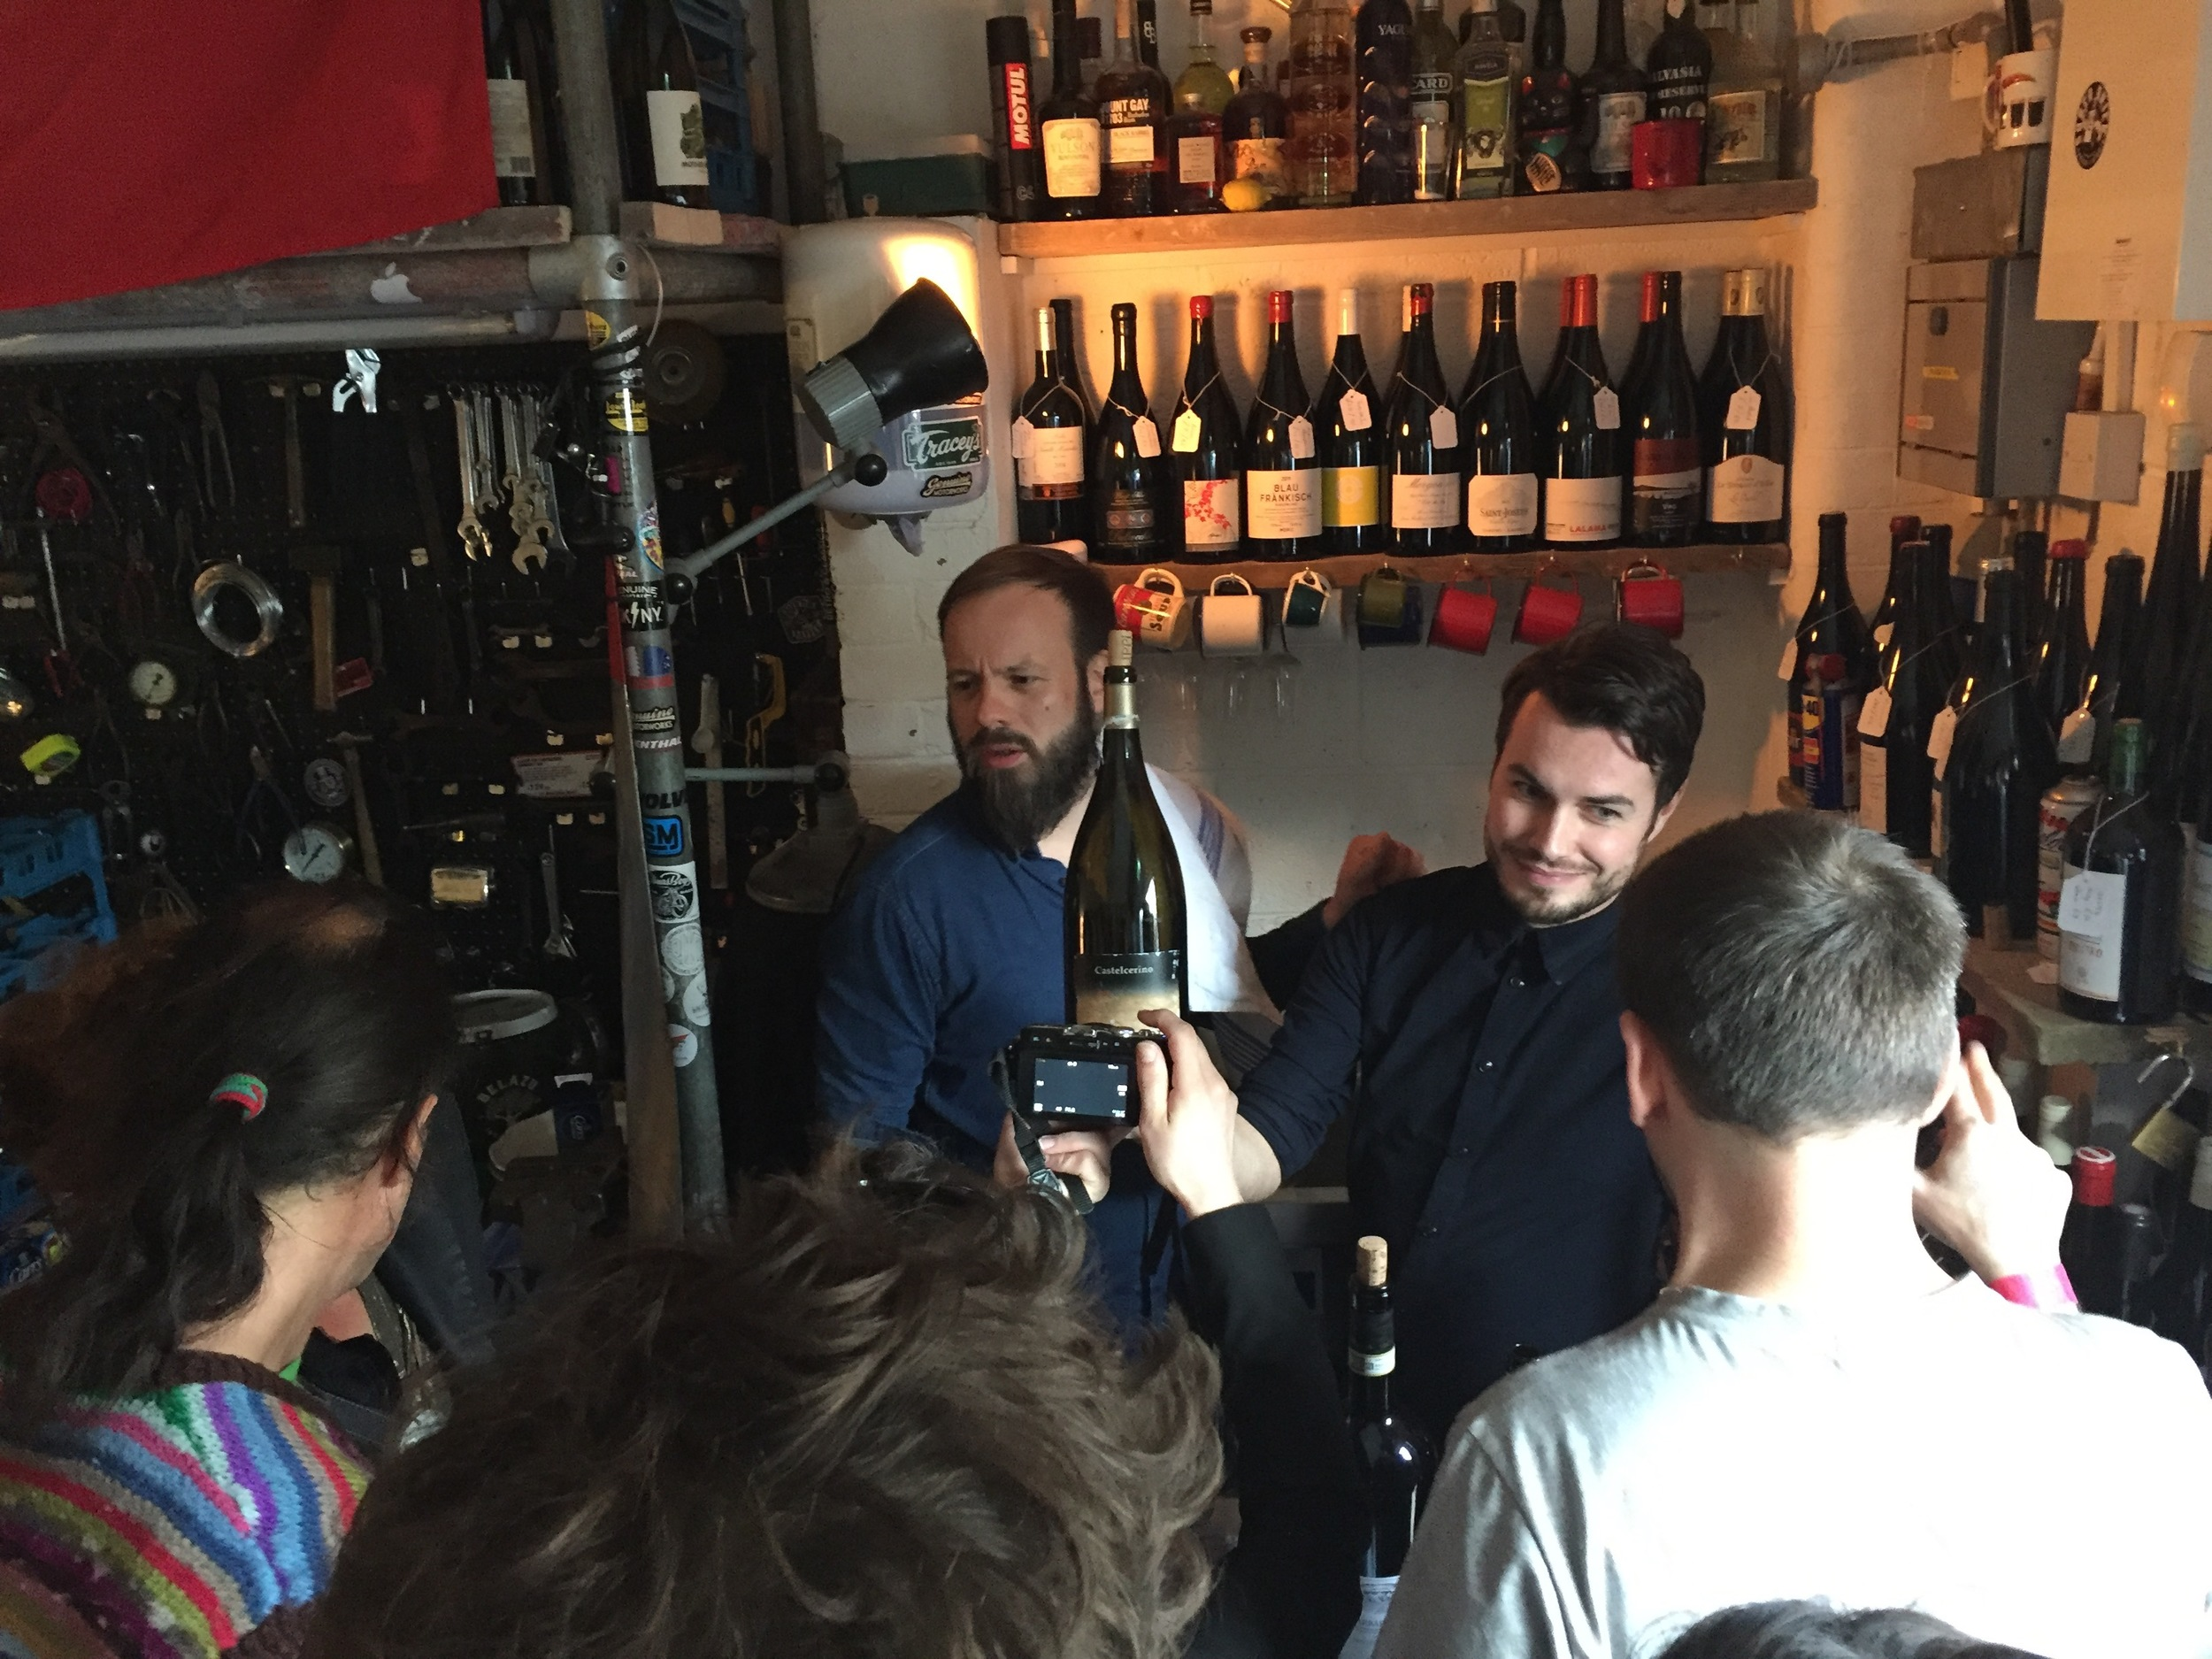 Jan Hugel of Wild Things (Berlin) & Mark Andrew of Noble Rot (London) pouring wine on Sun 15 May 2016.